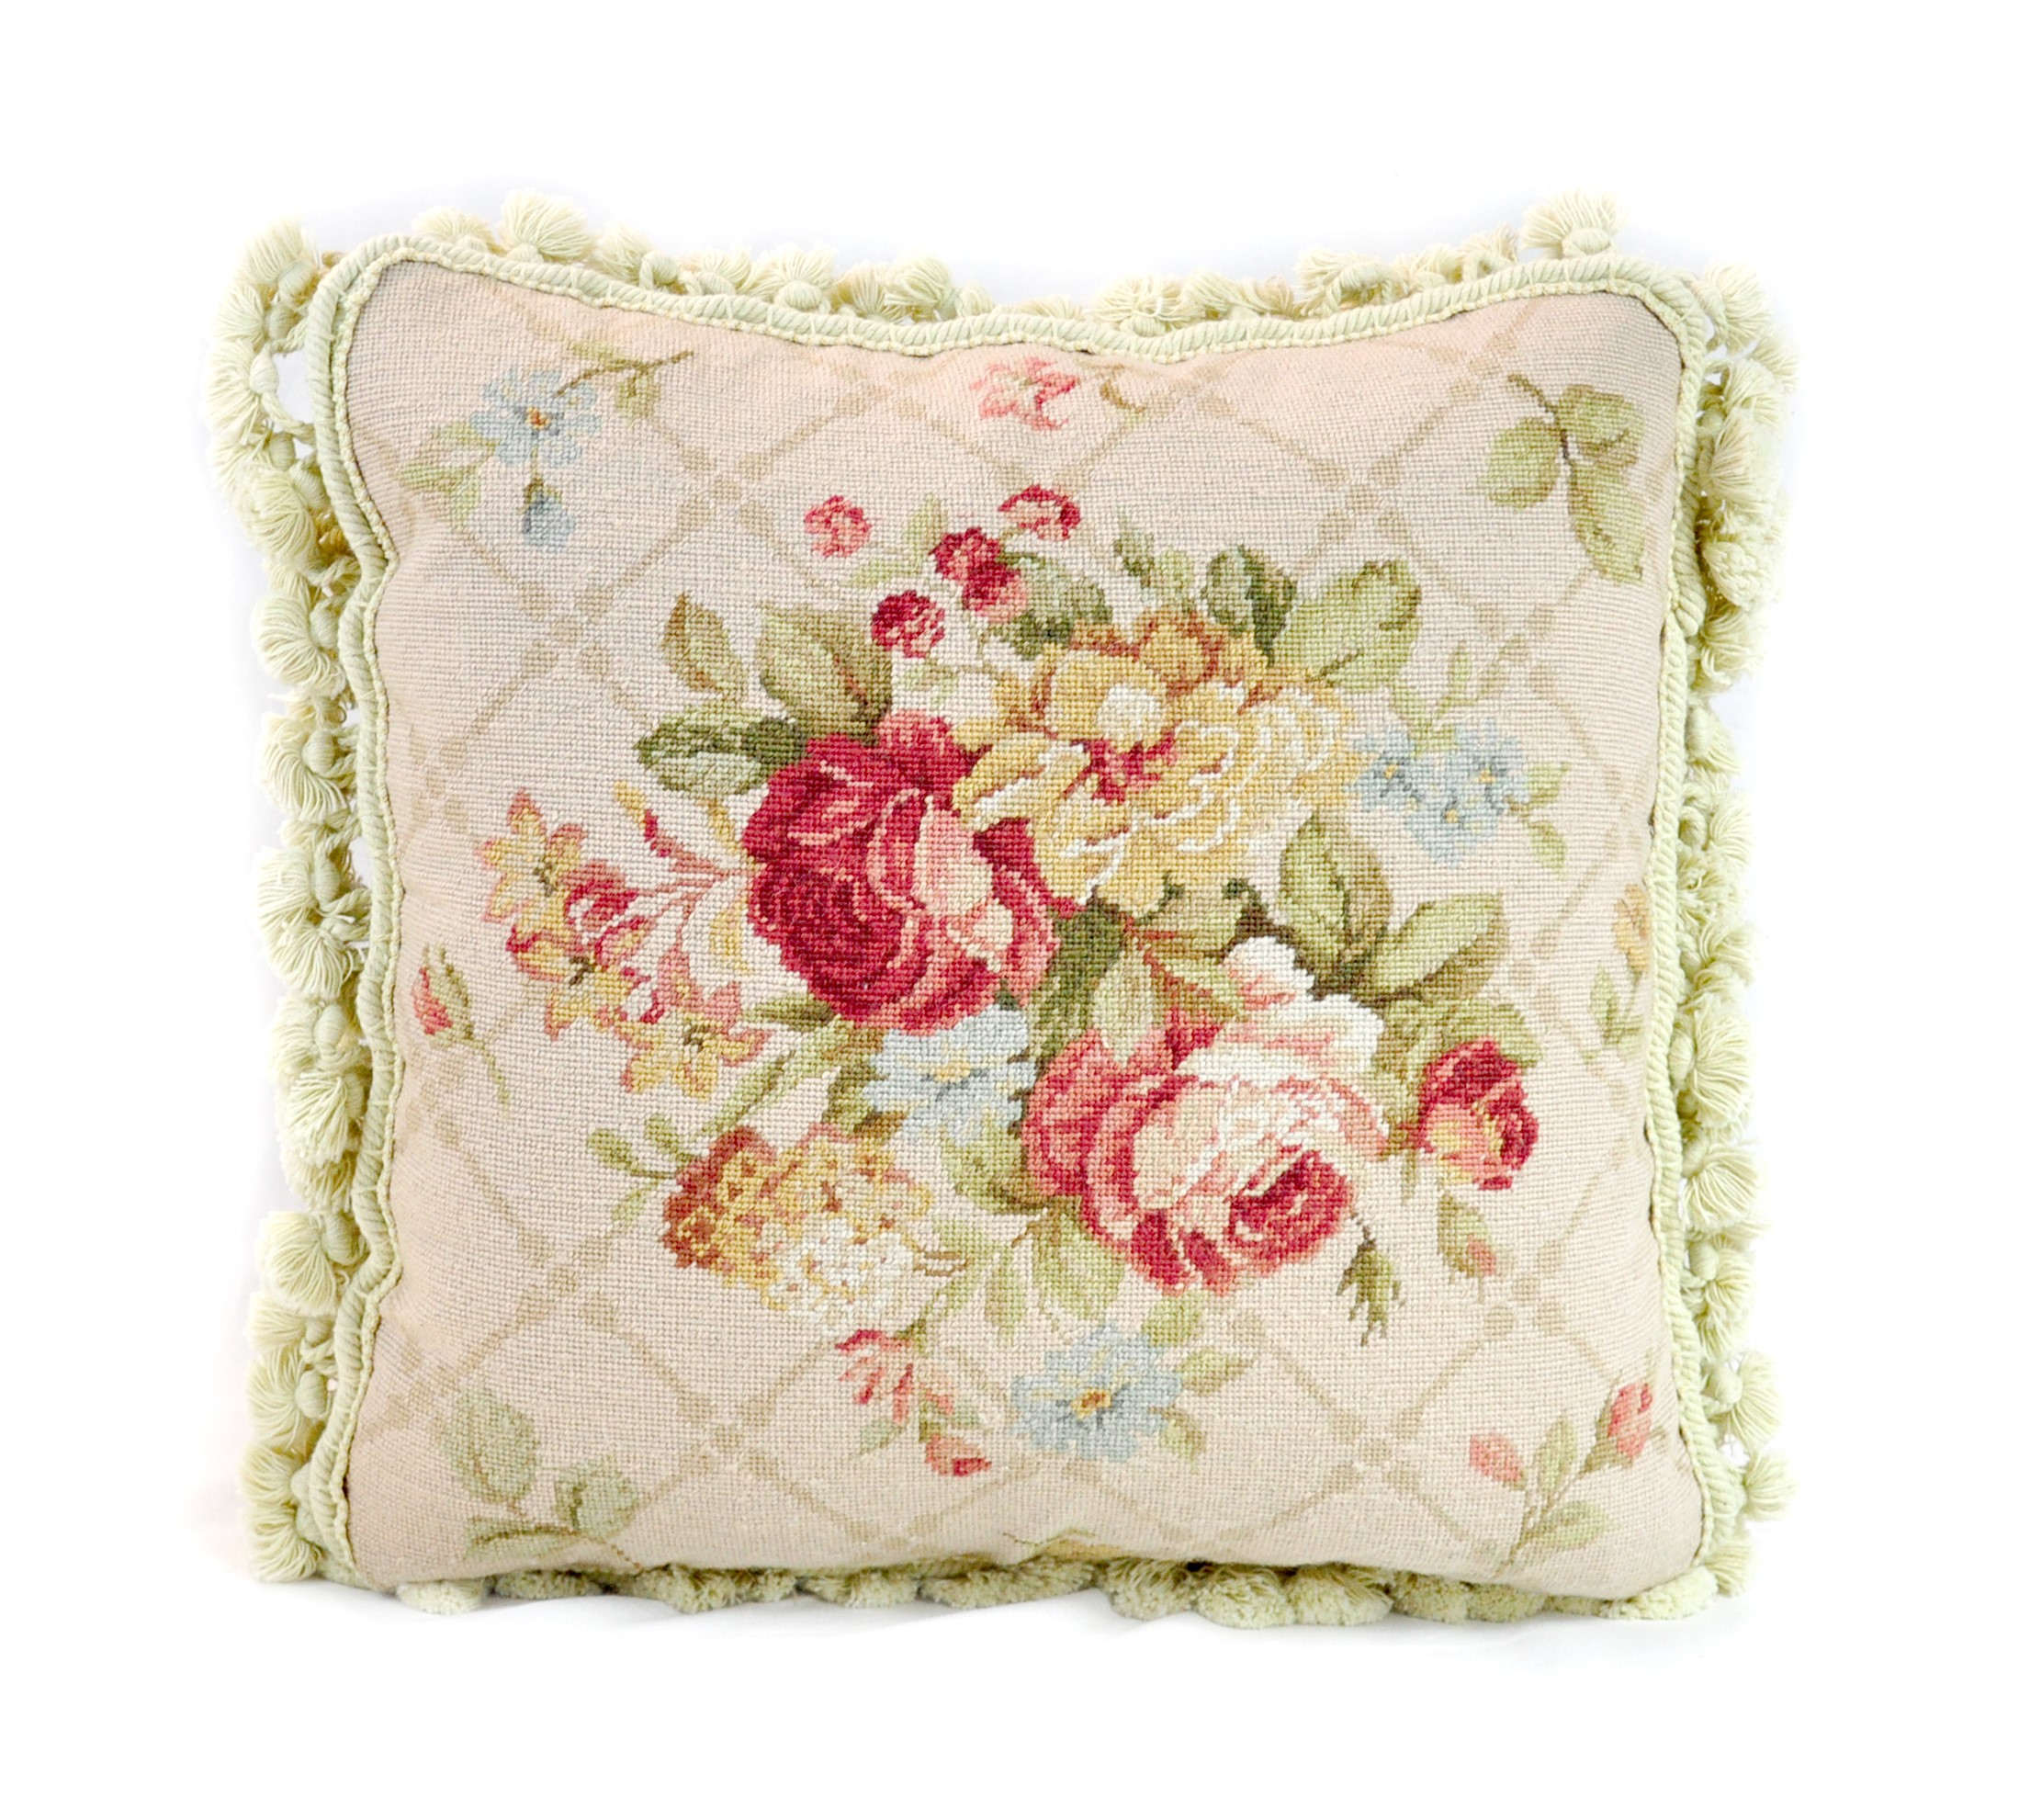 16×16 Wool Needlepoint Rose Bouquet Cushion Cover Pillow Case 12981045